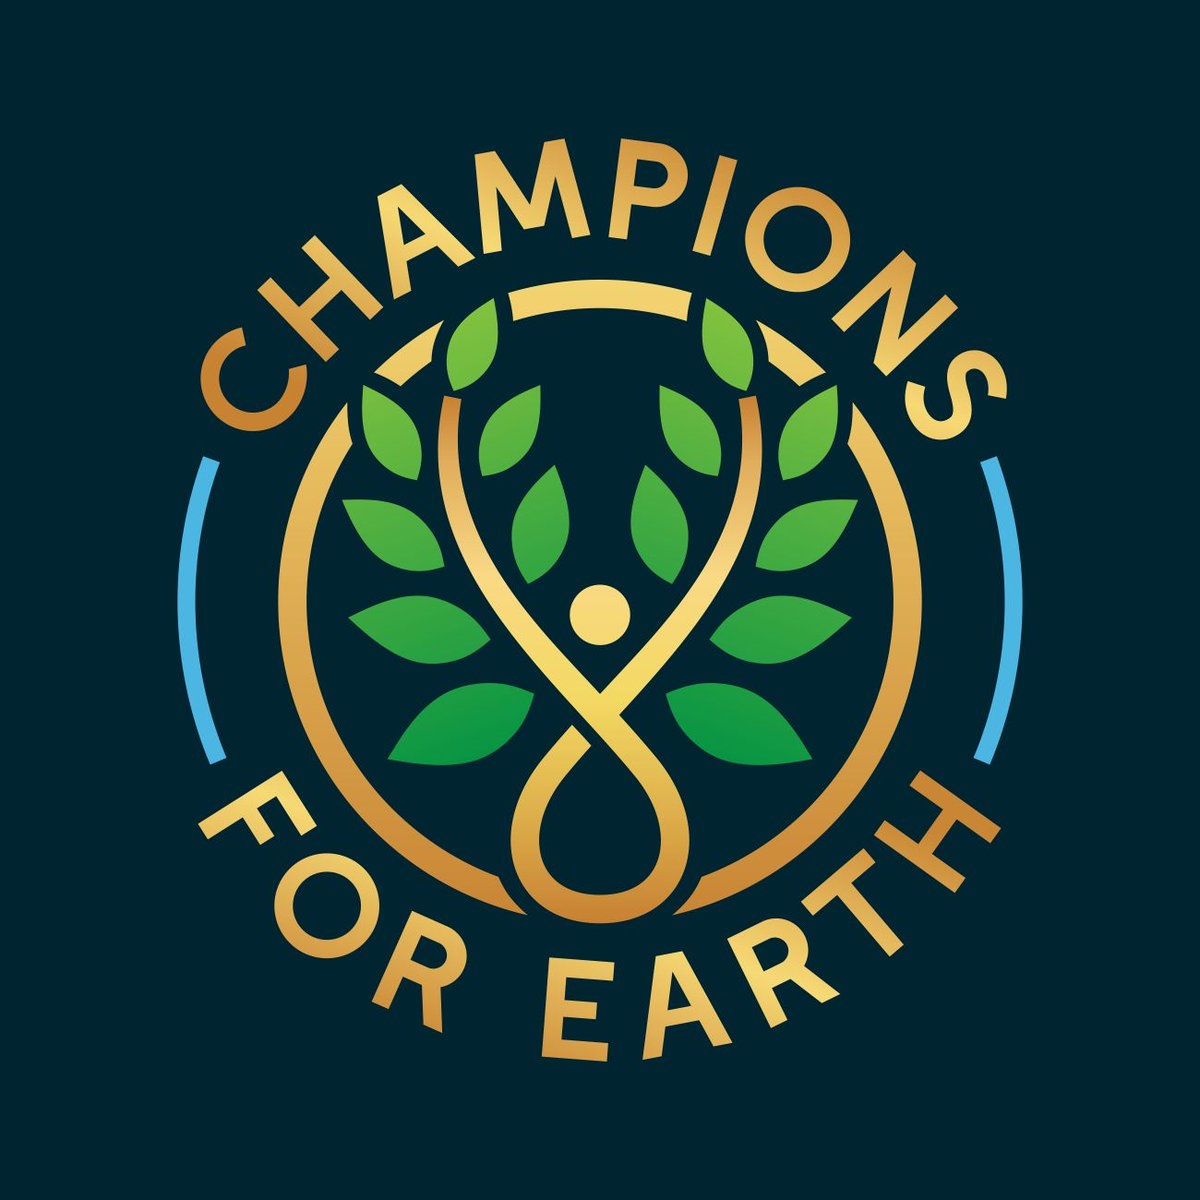 Read and sign our open letter to @BorisJohnson, calling on the UK Government to prioritise a #GreenRecovery.  Join over 300 GB Olympians & Paralympians - including @SteveRedgrave5, @Mo_Farah and @paulajradcliffe:  - https://t.co/15C8JKFawb -  #ChampionsForEarth  #BuildBackBetter https://t.co/46OqToXROg